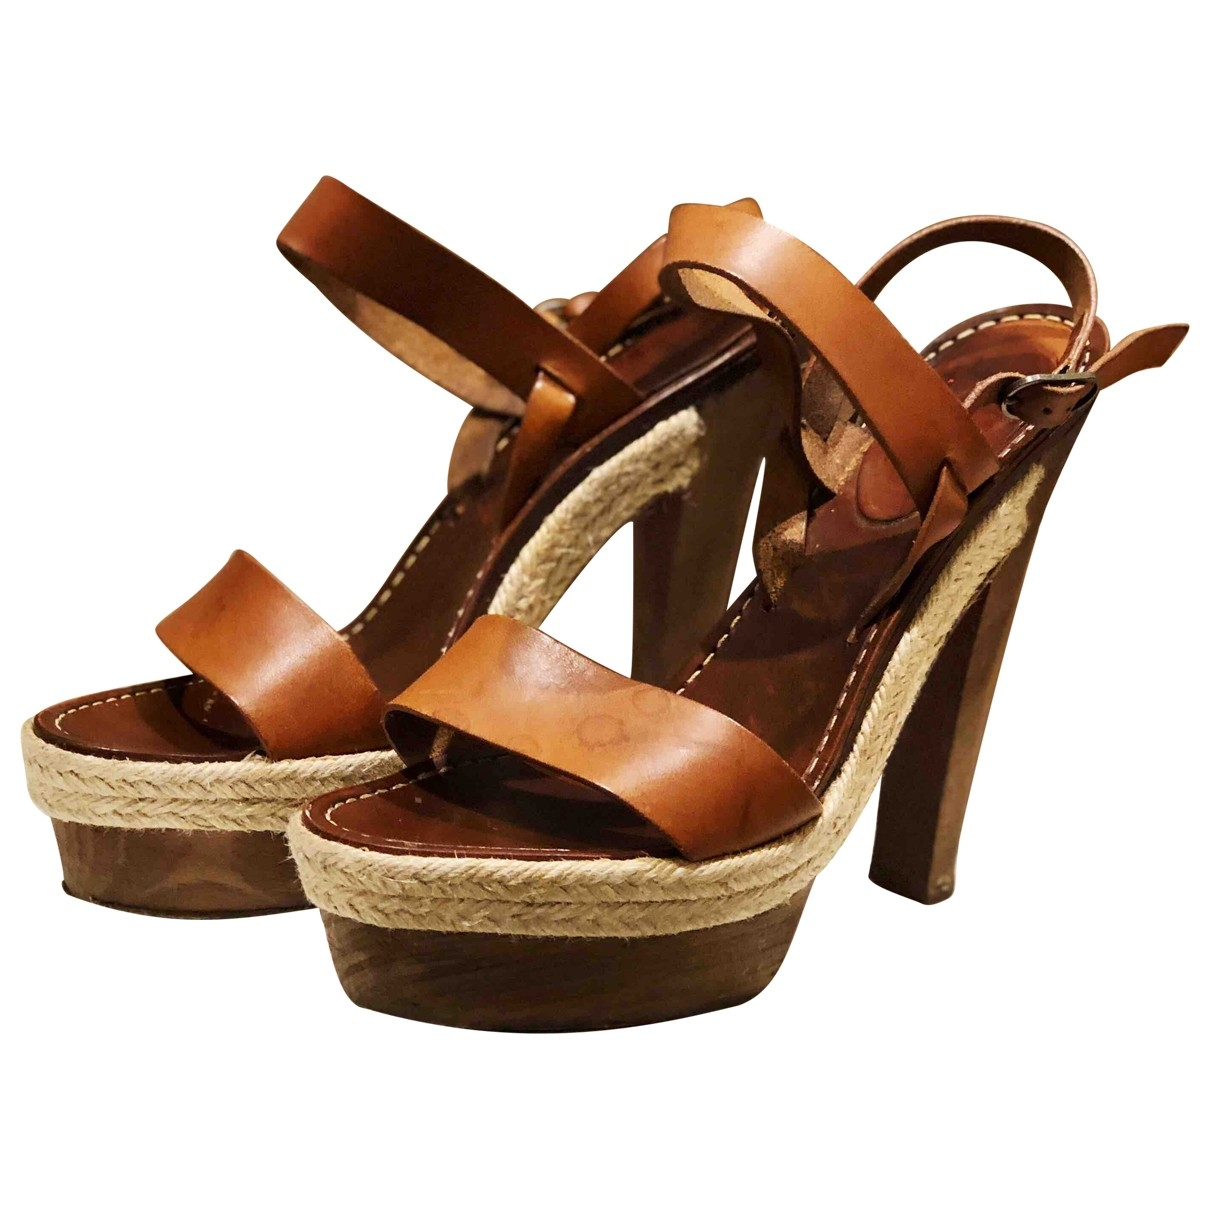 Christian Louboutin \N Brown Leather Sandals for Women 40 EU